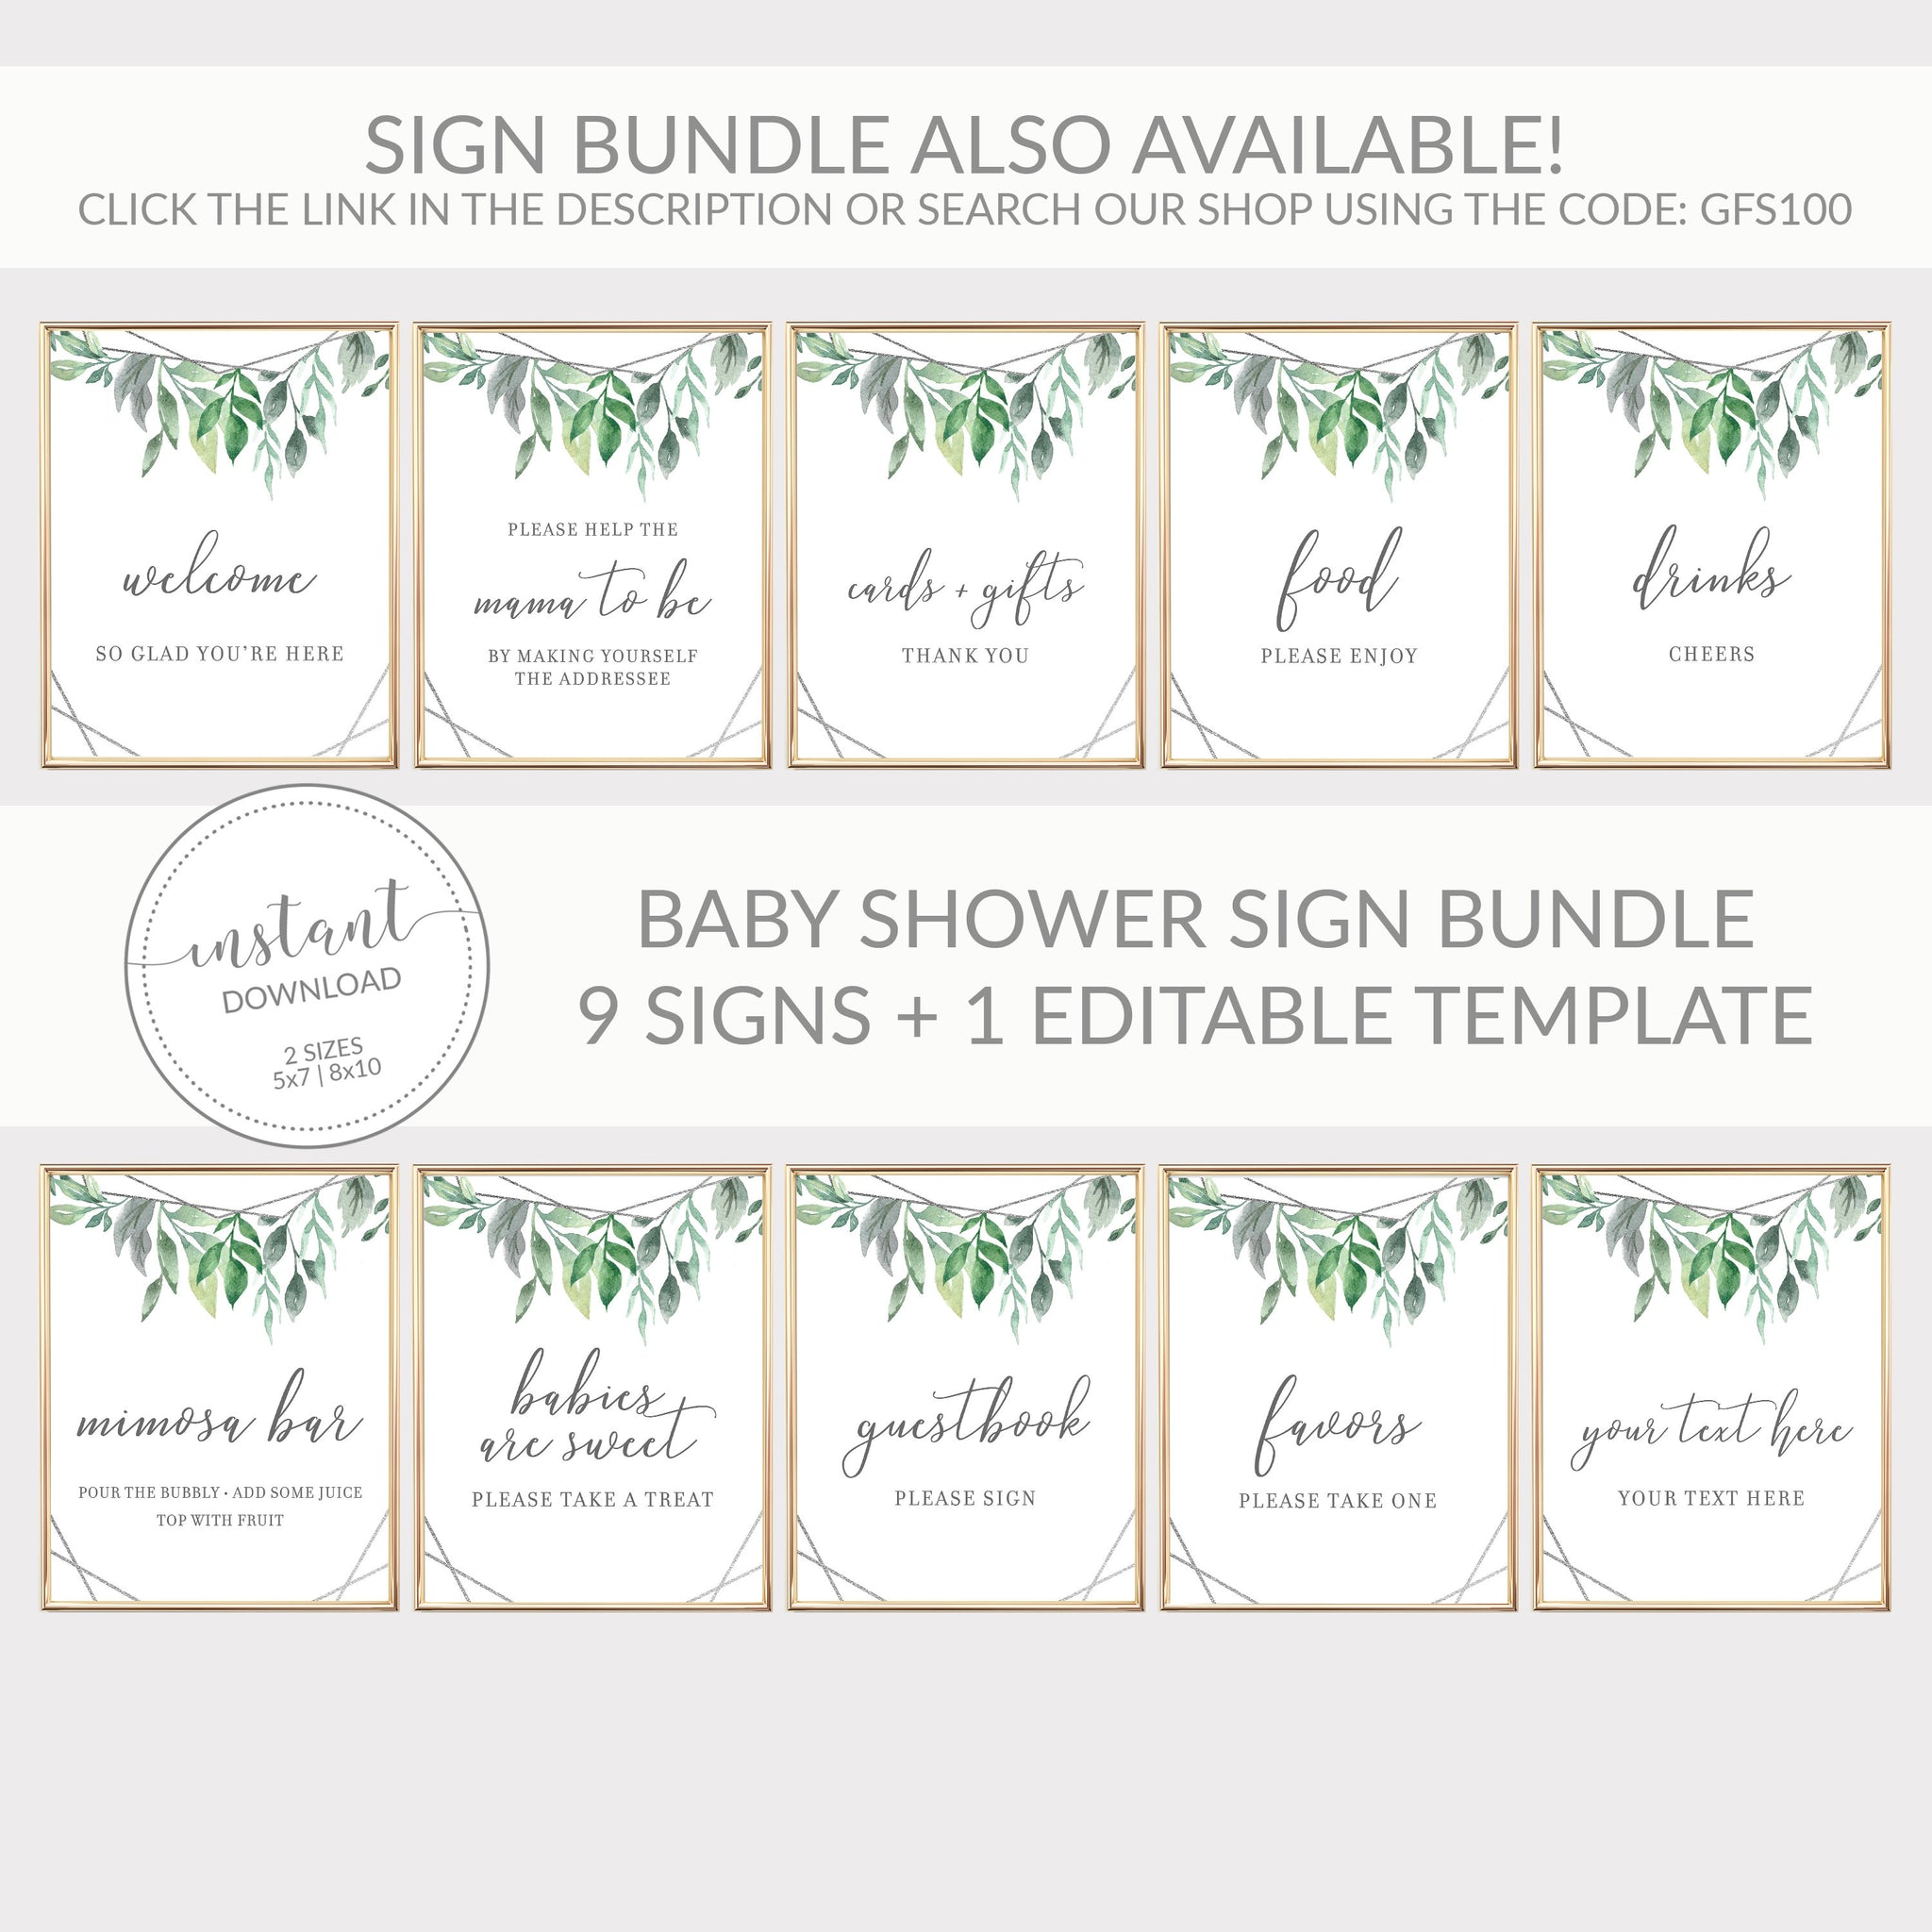 Geometric Silver Greenery Printable Guestbook Sign INSTANT DOWNLOAD, Bridal Shower, Baby Shower, Wedding Decorations Supplies - GFS100